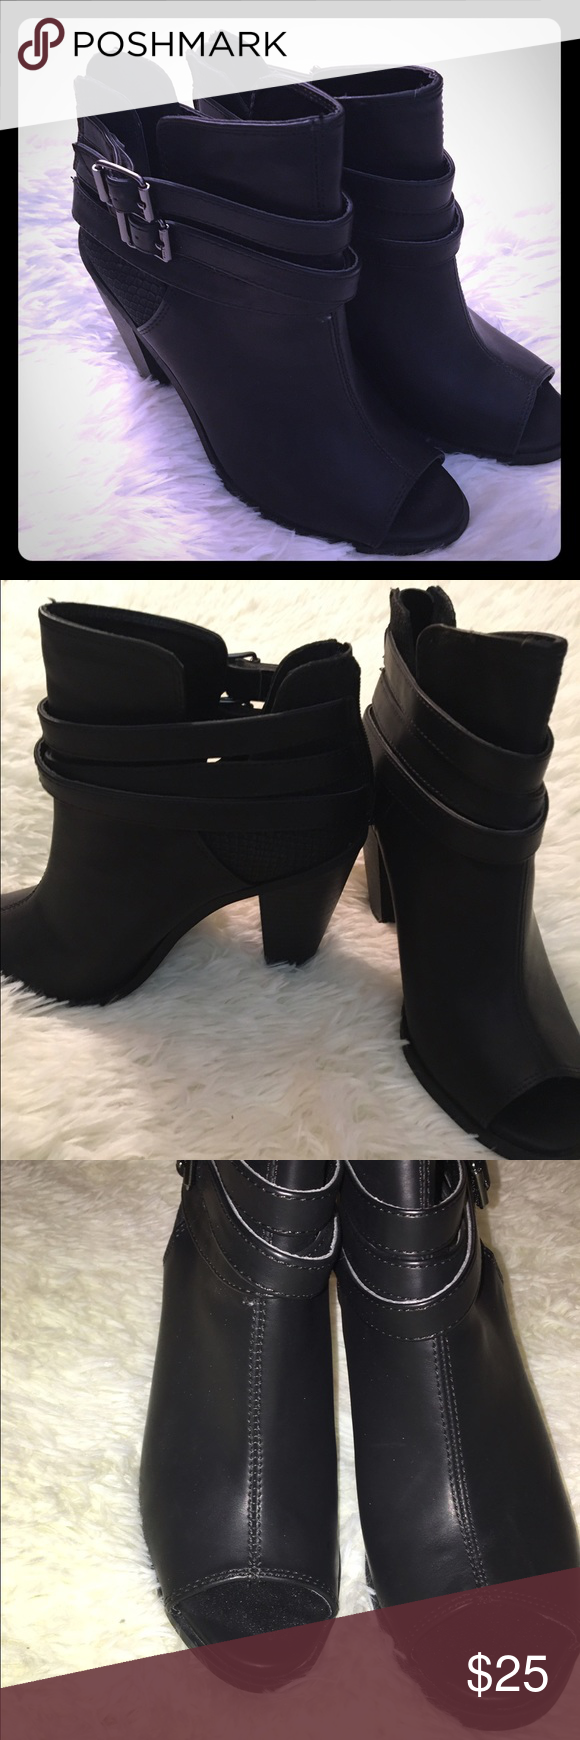 🎉Flash Sale 🎉black Peep Toe Booties Super cute black leather peep toe booties, chunky heel makes these comfortable yet still trendy!!! Buckle detailing on the sides; they zip up in the back, only worn once, still in great condition!!! Simply Vera Vera Wang Shoes Ankle Boots & Booties